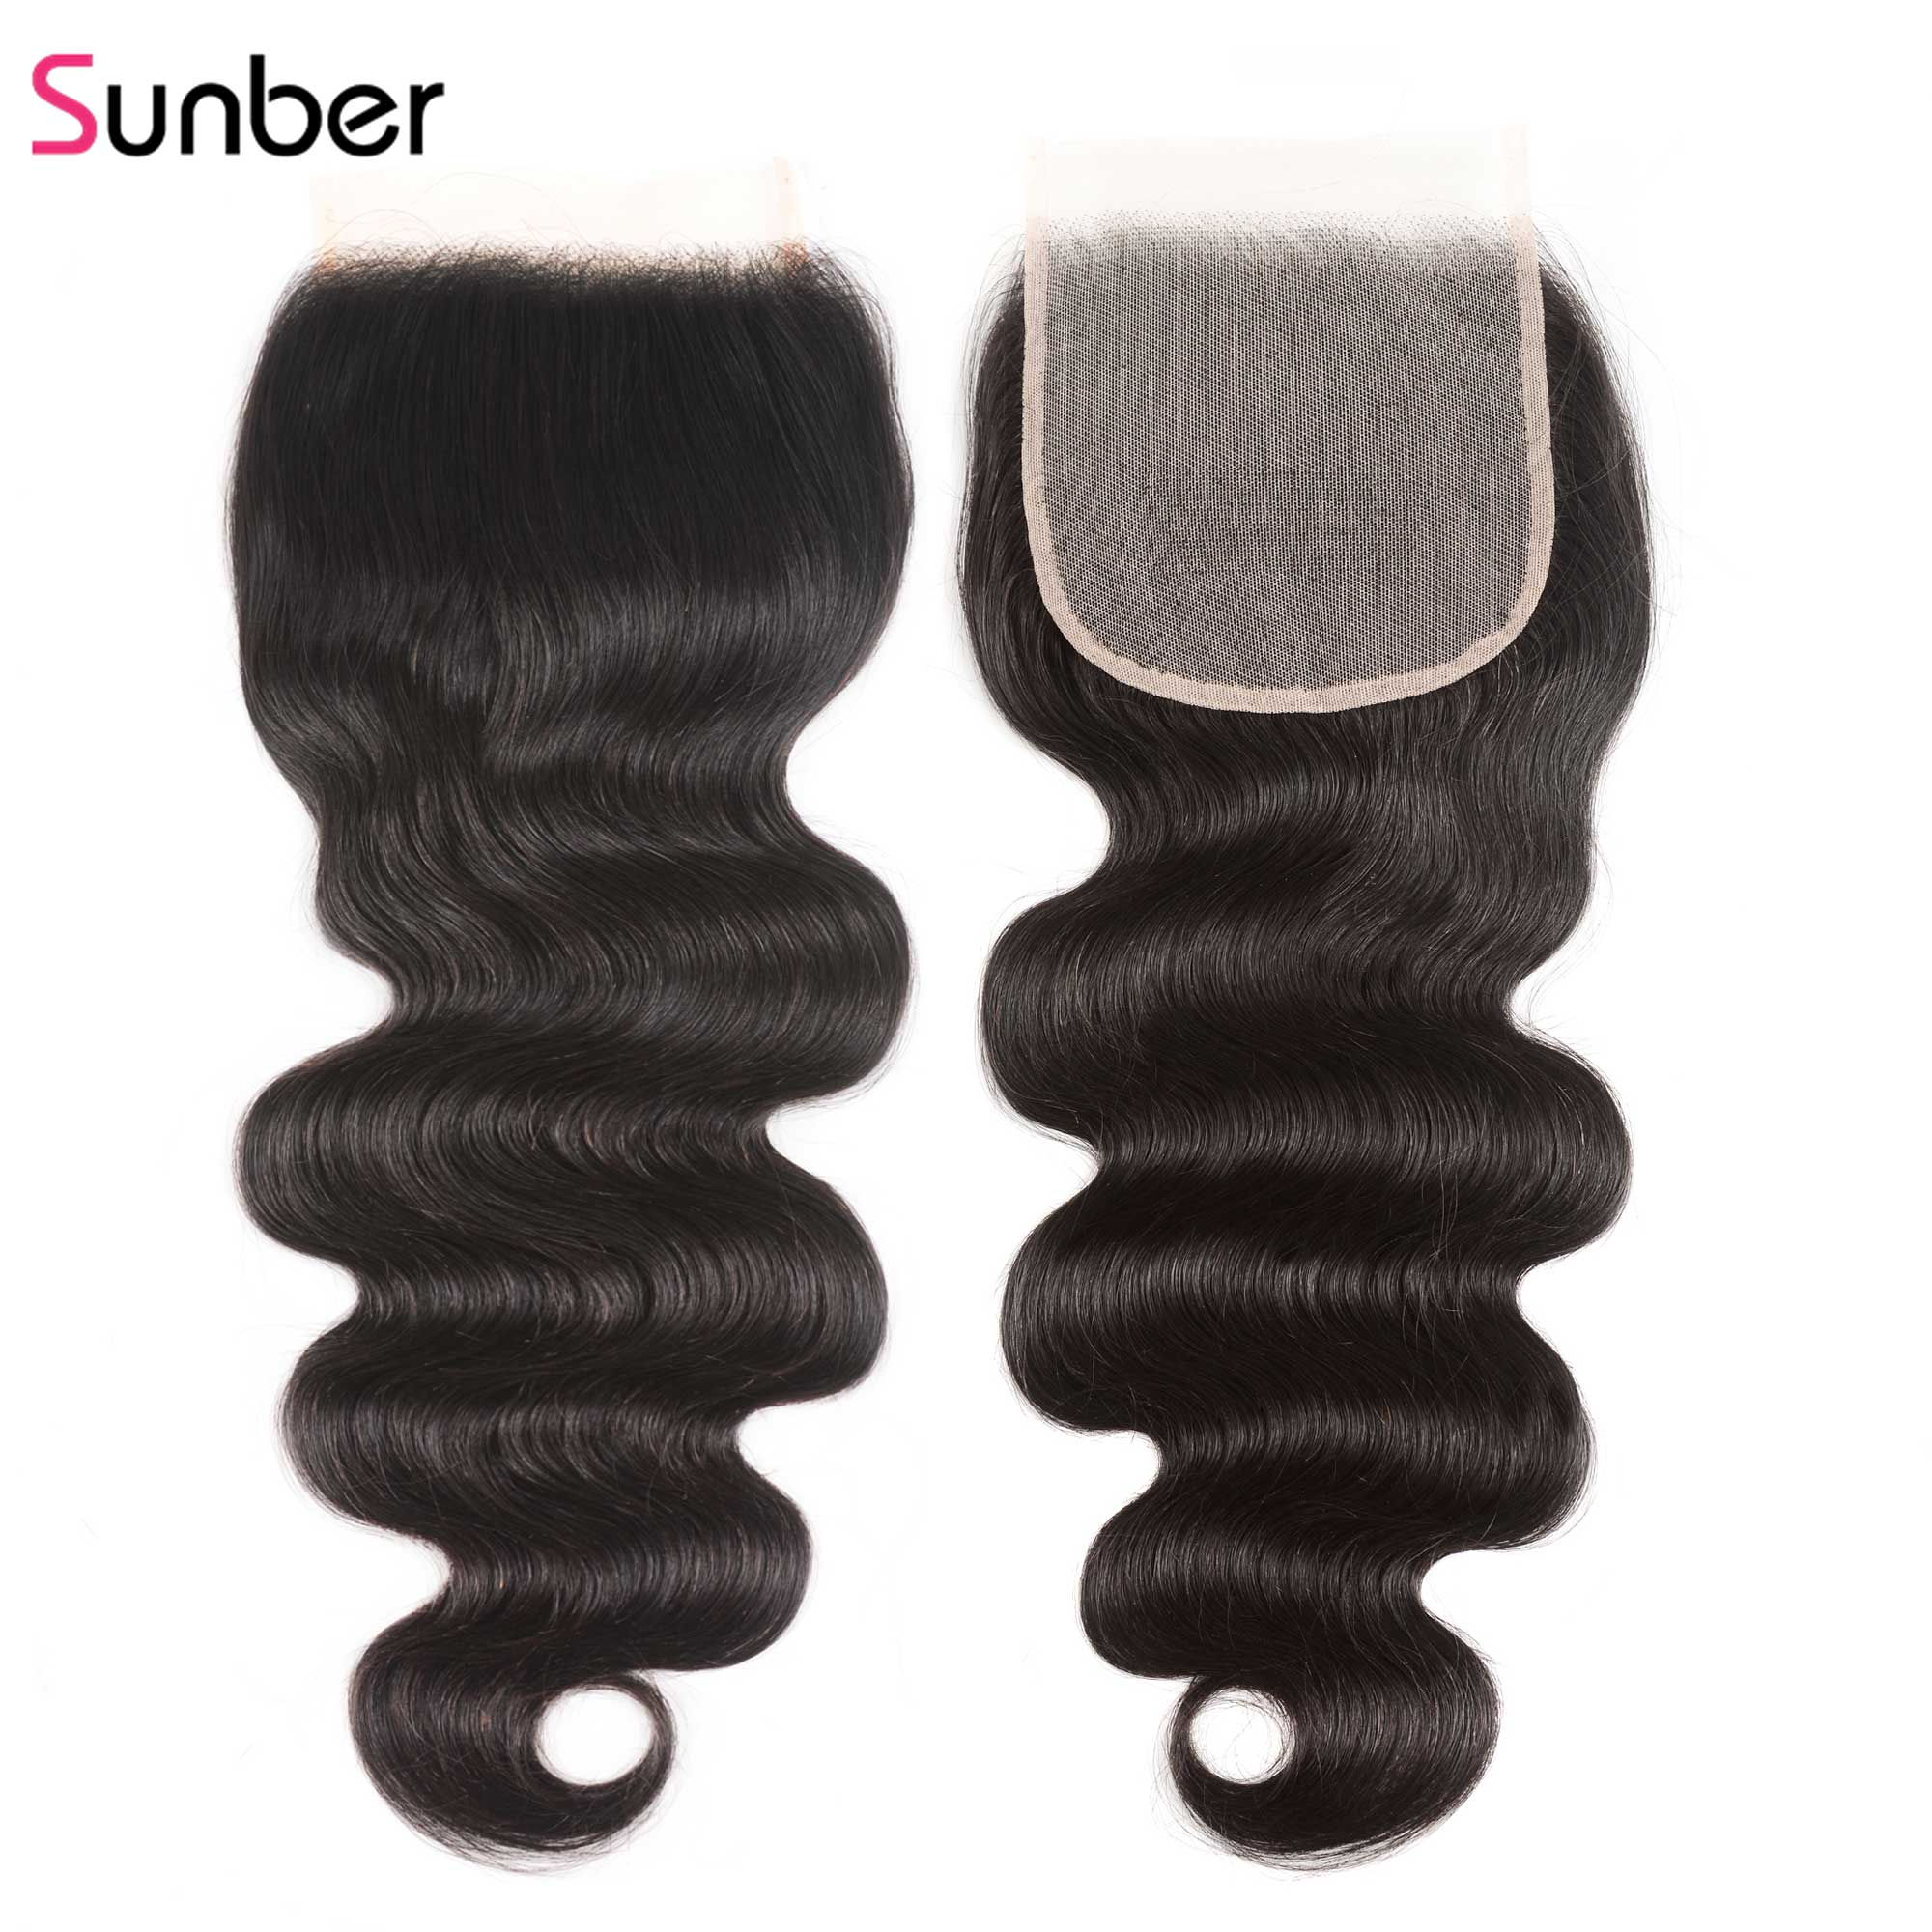 Sunber Hair Body Wave HD Closure Pre Plucked Remy Hair Natural Hairline Preuvian Human Hair 5x5 Transparent Lace Closure(China)